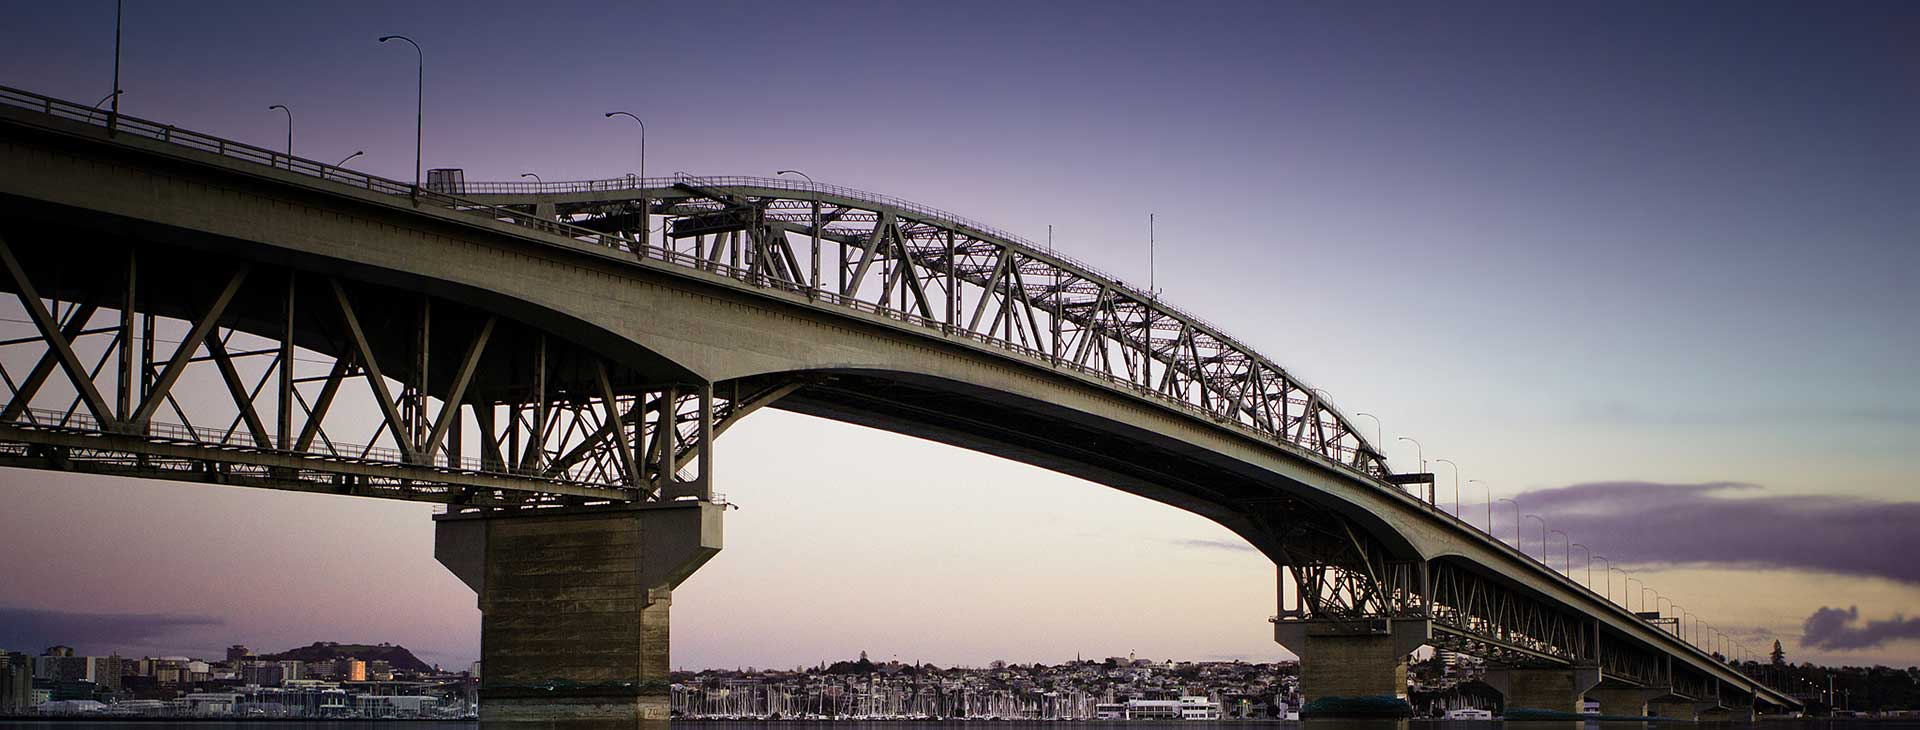 Auckland North Harbour Bridge - Bridge Your Way to Franchise Ownership